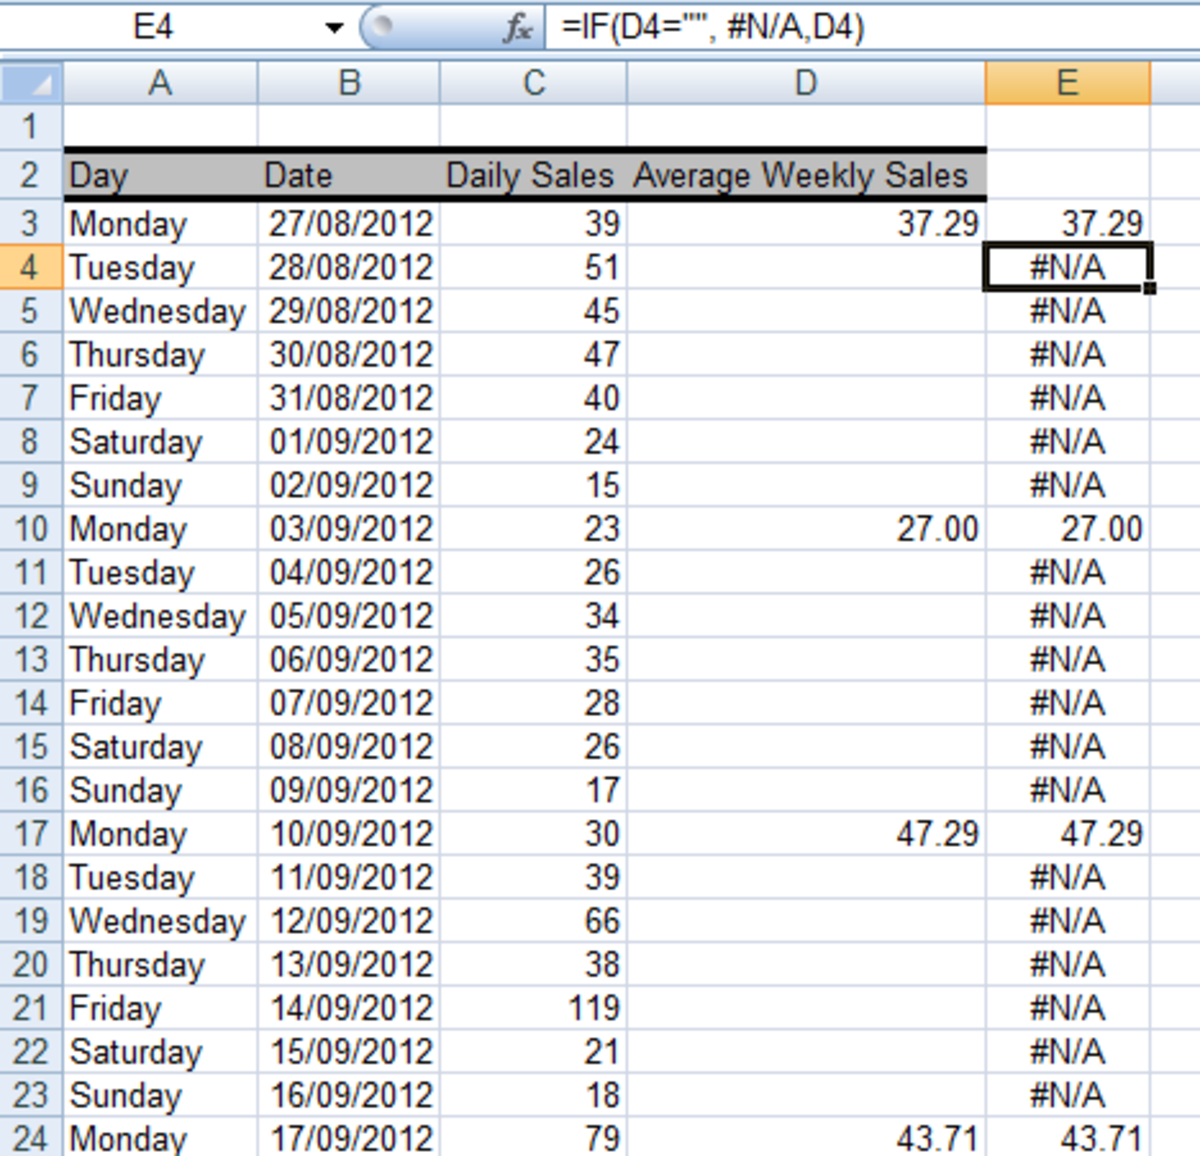 Ediblewildsus  Pretty How To Get Excel  And  To Ignore Empty Cells In A Chart Or  With Interesting Using The If Function In A Formula To Convert Empty Cells To Na With Divine Black Scholes Formula Excel Also Olap Cube In Excel In Addition Excel For Apple Computers And Sample Excel File As Well As Microsoft Excel  Additionally Name Range Excel From Turbofuturecom With Ediblewildsus  Interesting How To Get Excel  And  To Ignore Empty Cells In A Chart Or  With Divine Using The If Function In A Formula To Convert Empty Cells To Na And Pretty Black Scholes Formula Excel Also Olap Cube In Excel In Addition Excel For Apple Computers From Turbofuturecom